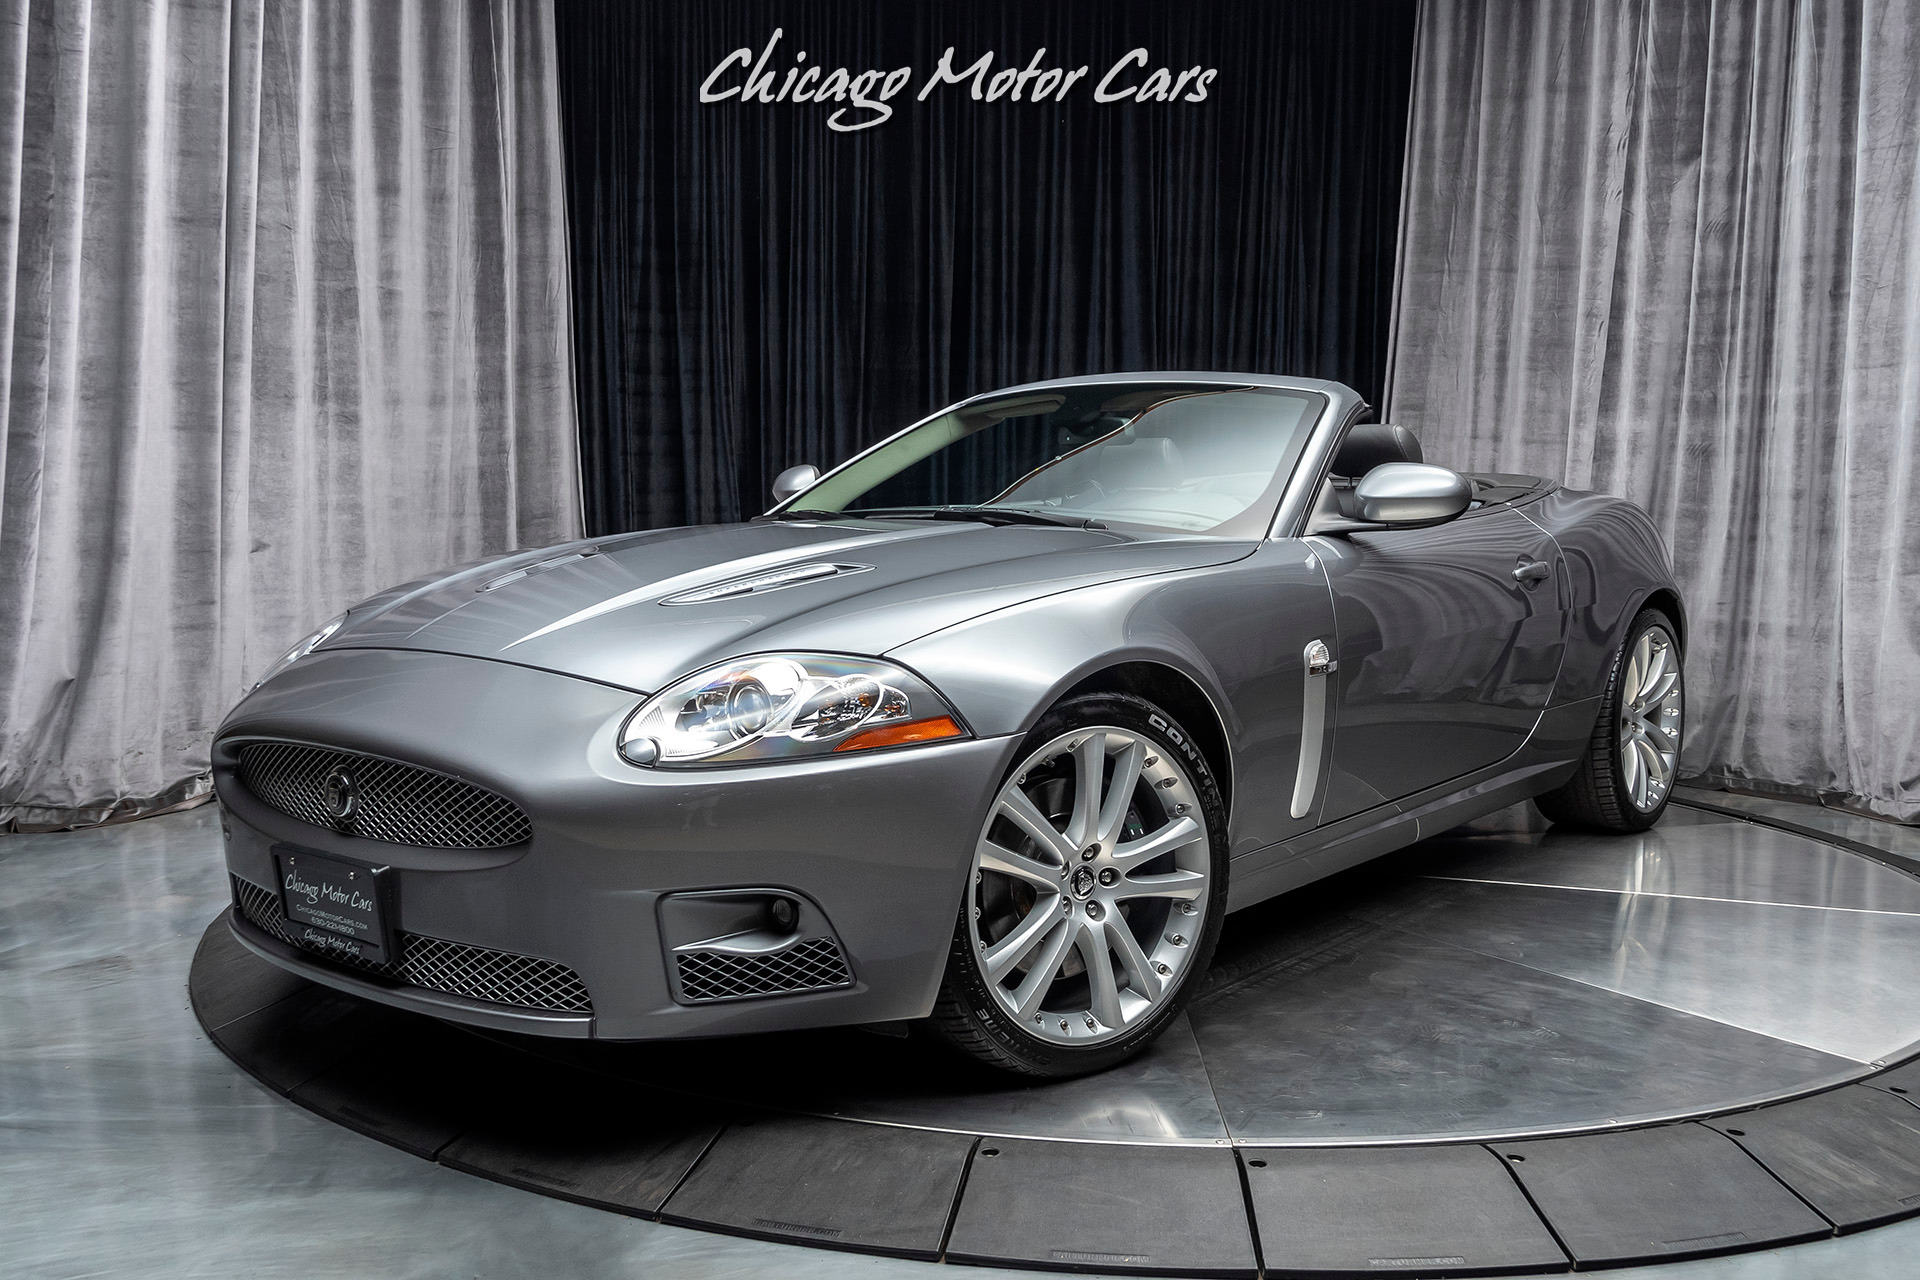 Used-2007-Jaguar-XKR-Convertible-LUXURY-PACK-Only-44k-Miles-Serviced-Great-Condition